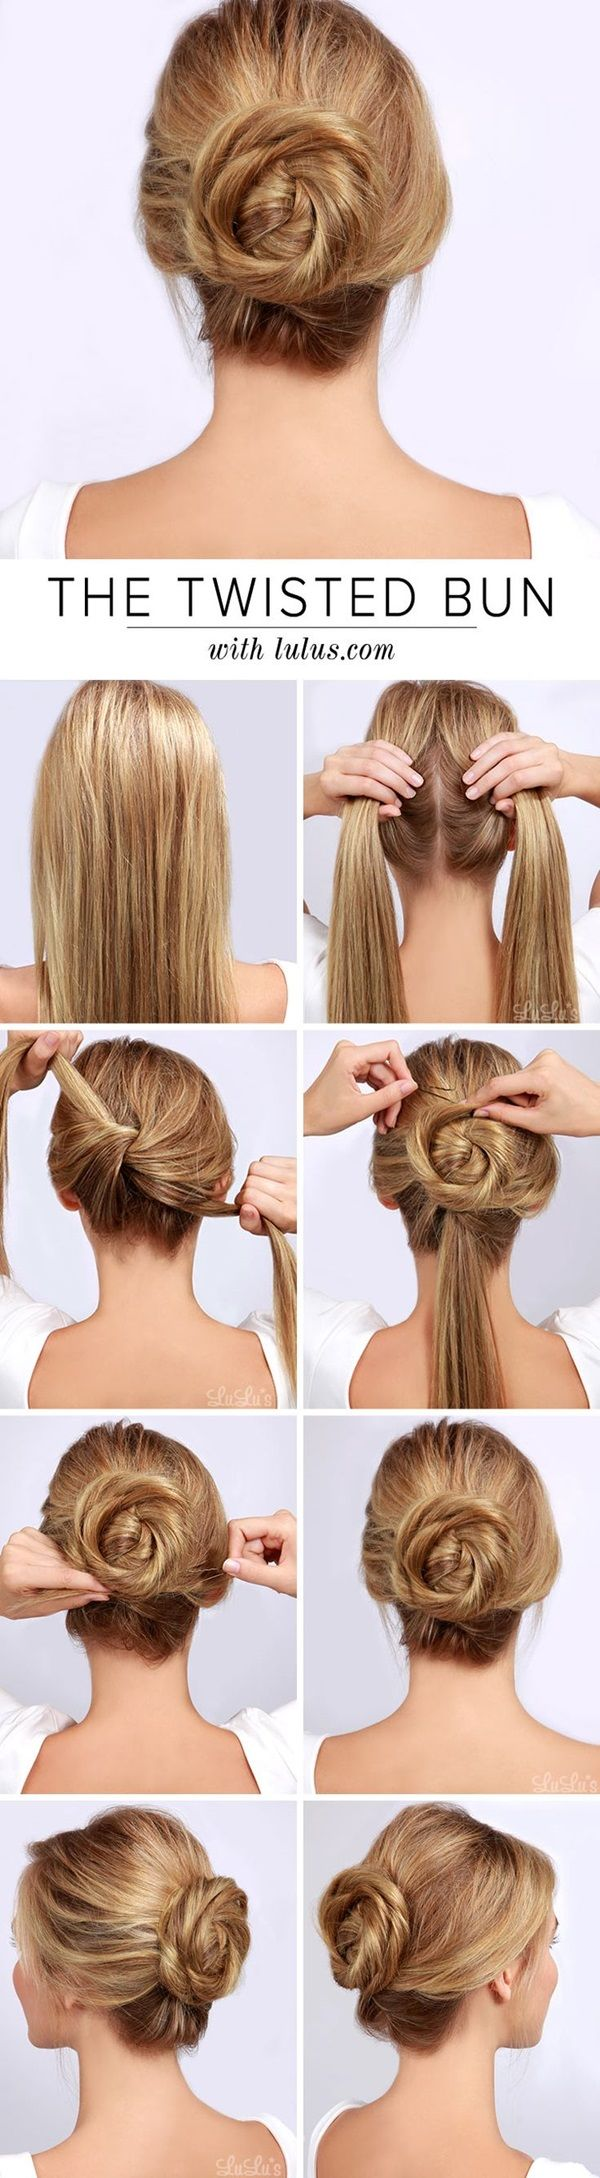 best 25+ easy bun hairstyles ideas on pinterest | bun hairstyles